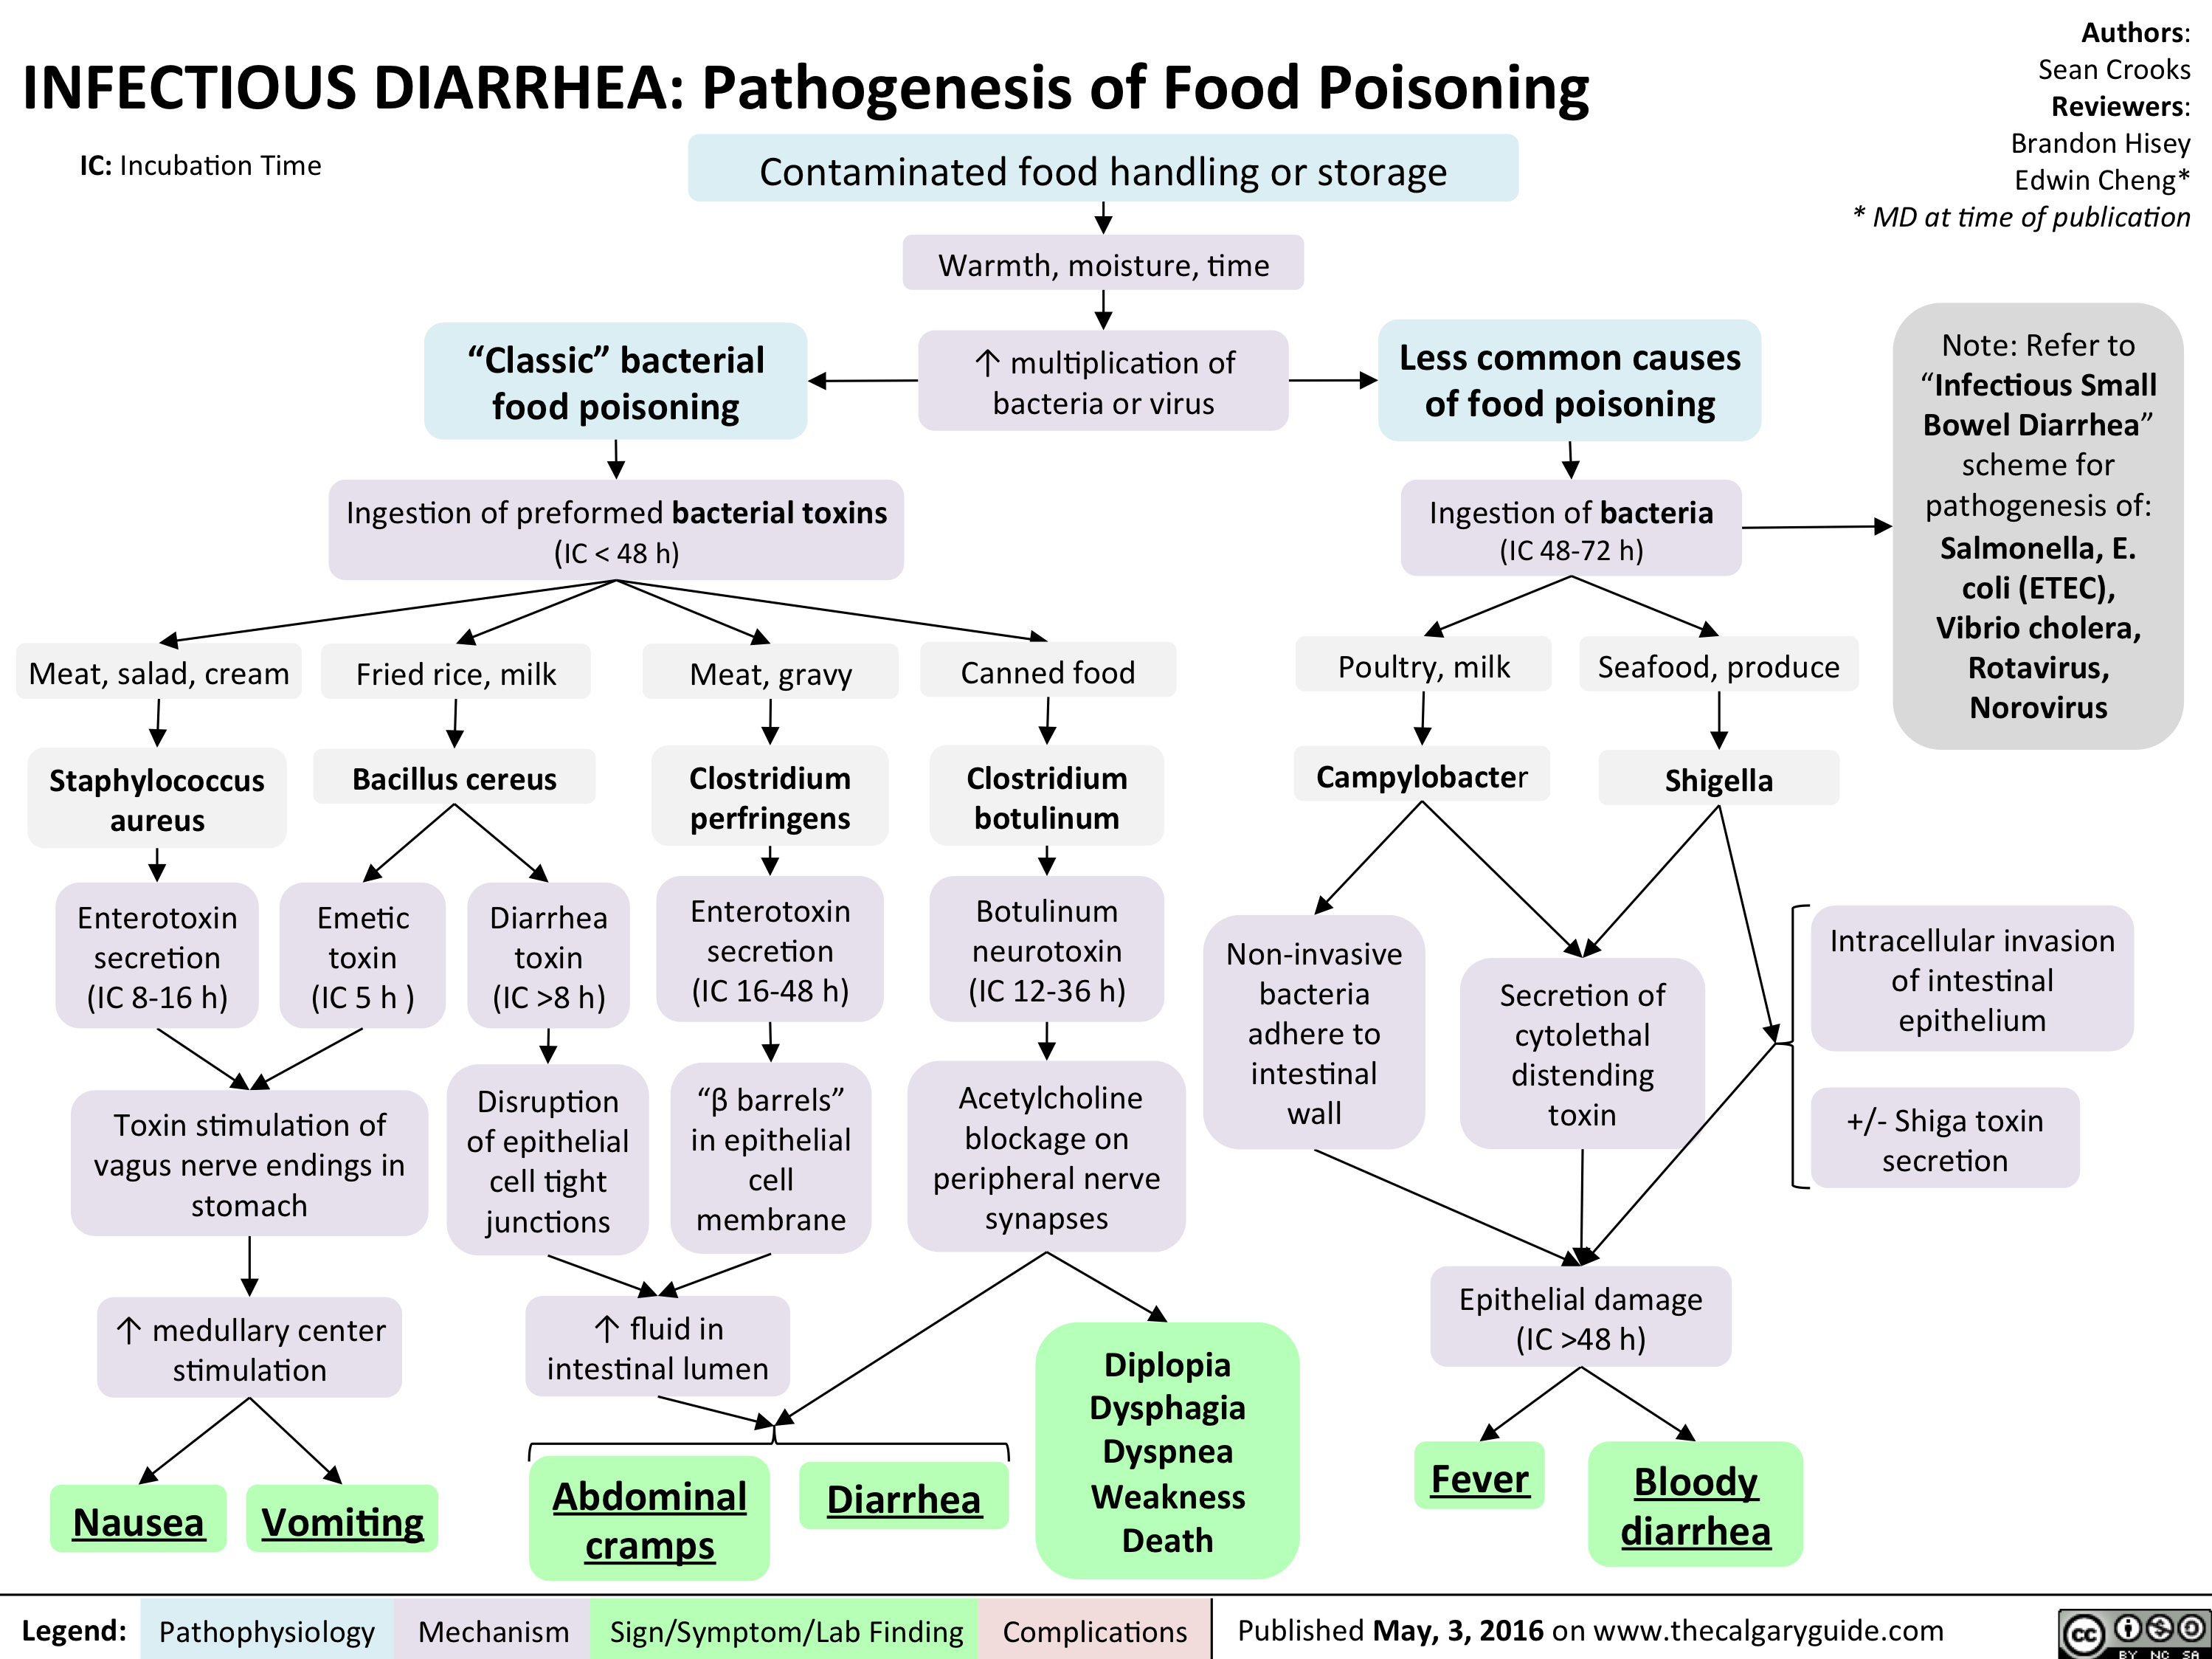 INFECTIOUS DIARRHEA: Pathogenesis of Food Poisoning